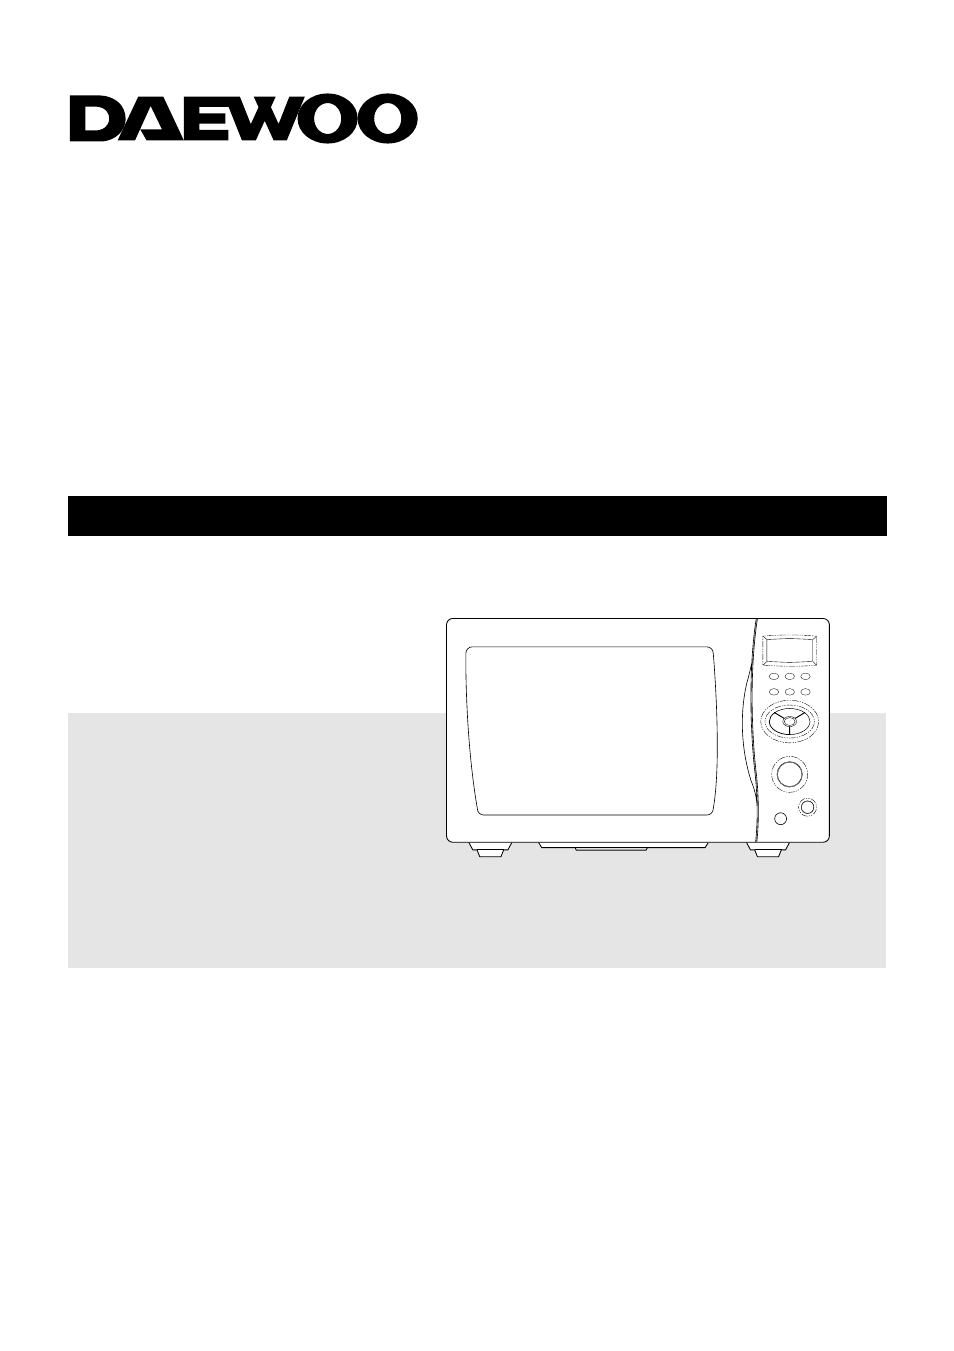 Daewoo Edition I Microwave Convection Oven Manual